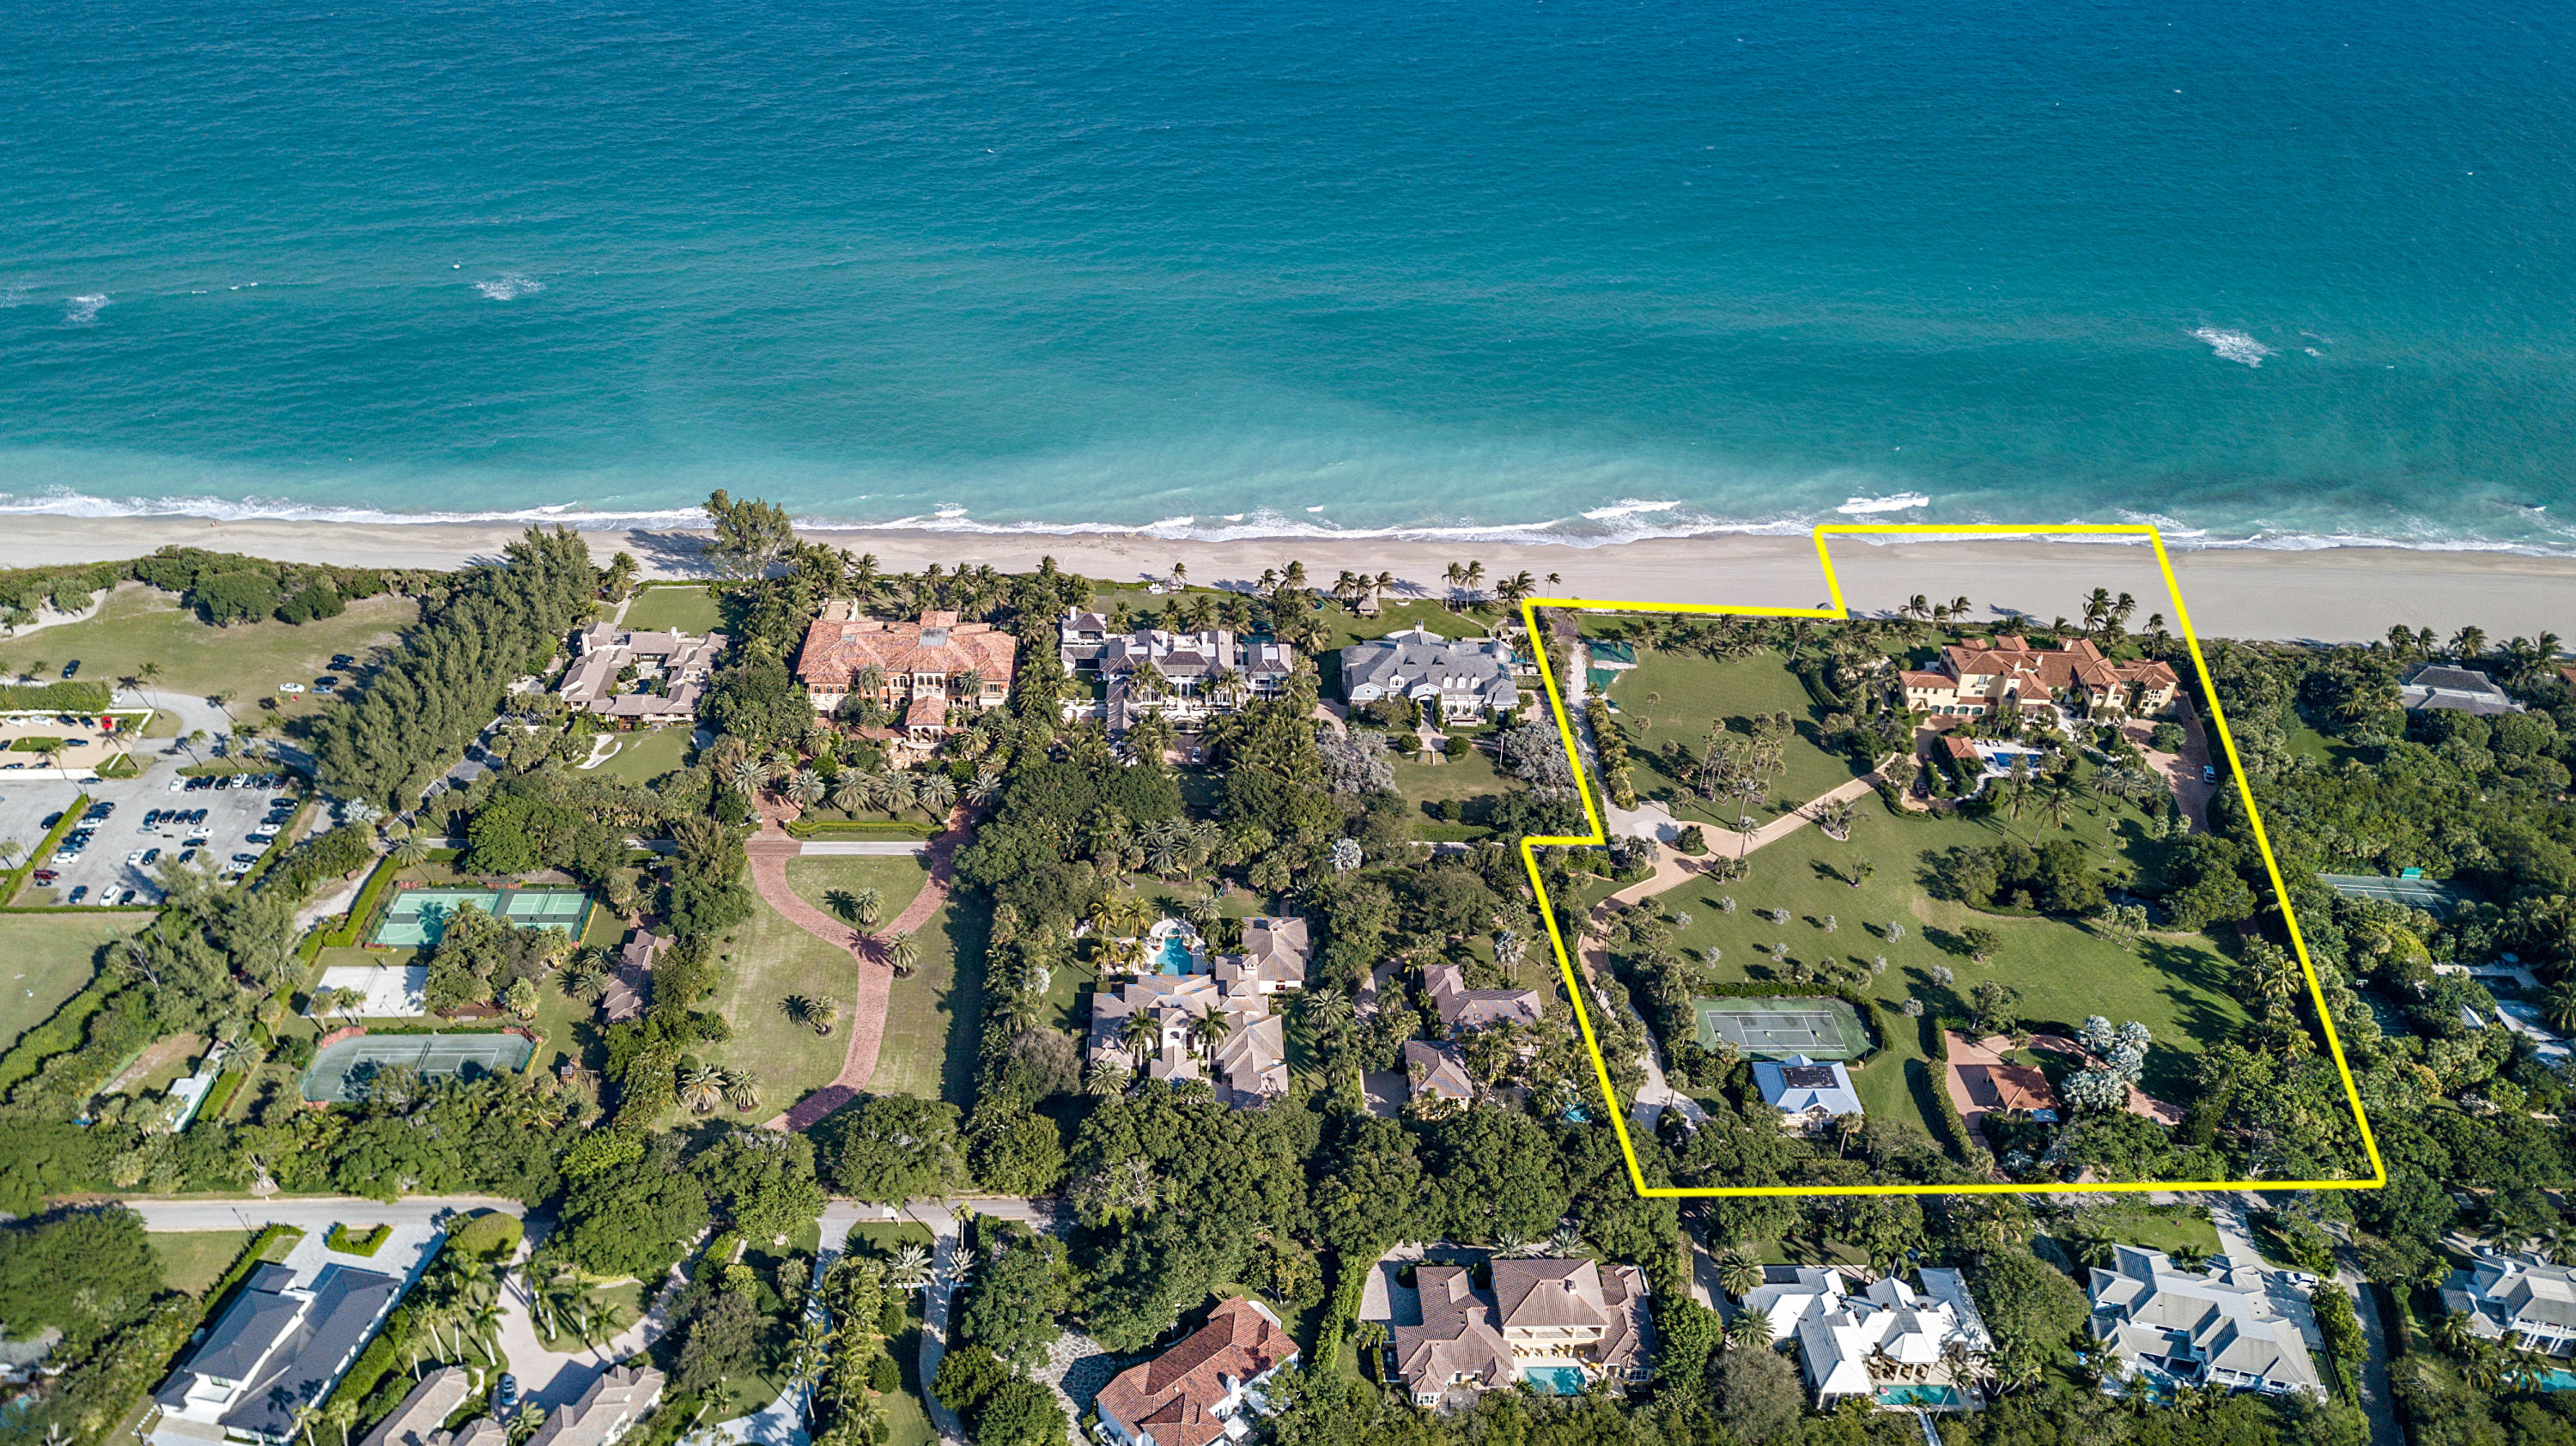 12525 Seminole Beach, North Palm Beach, Florida 33408